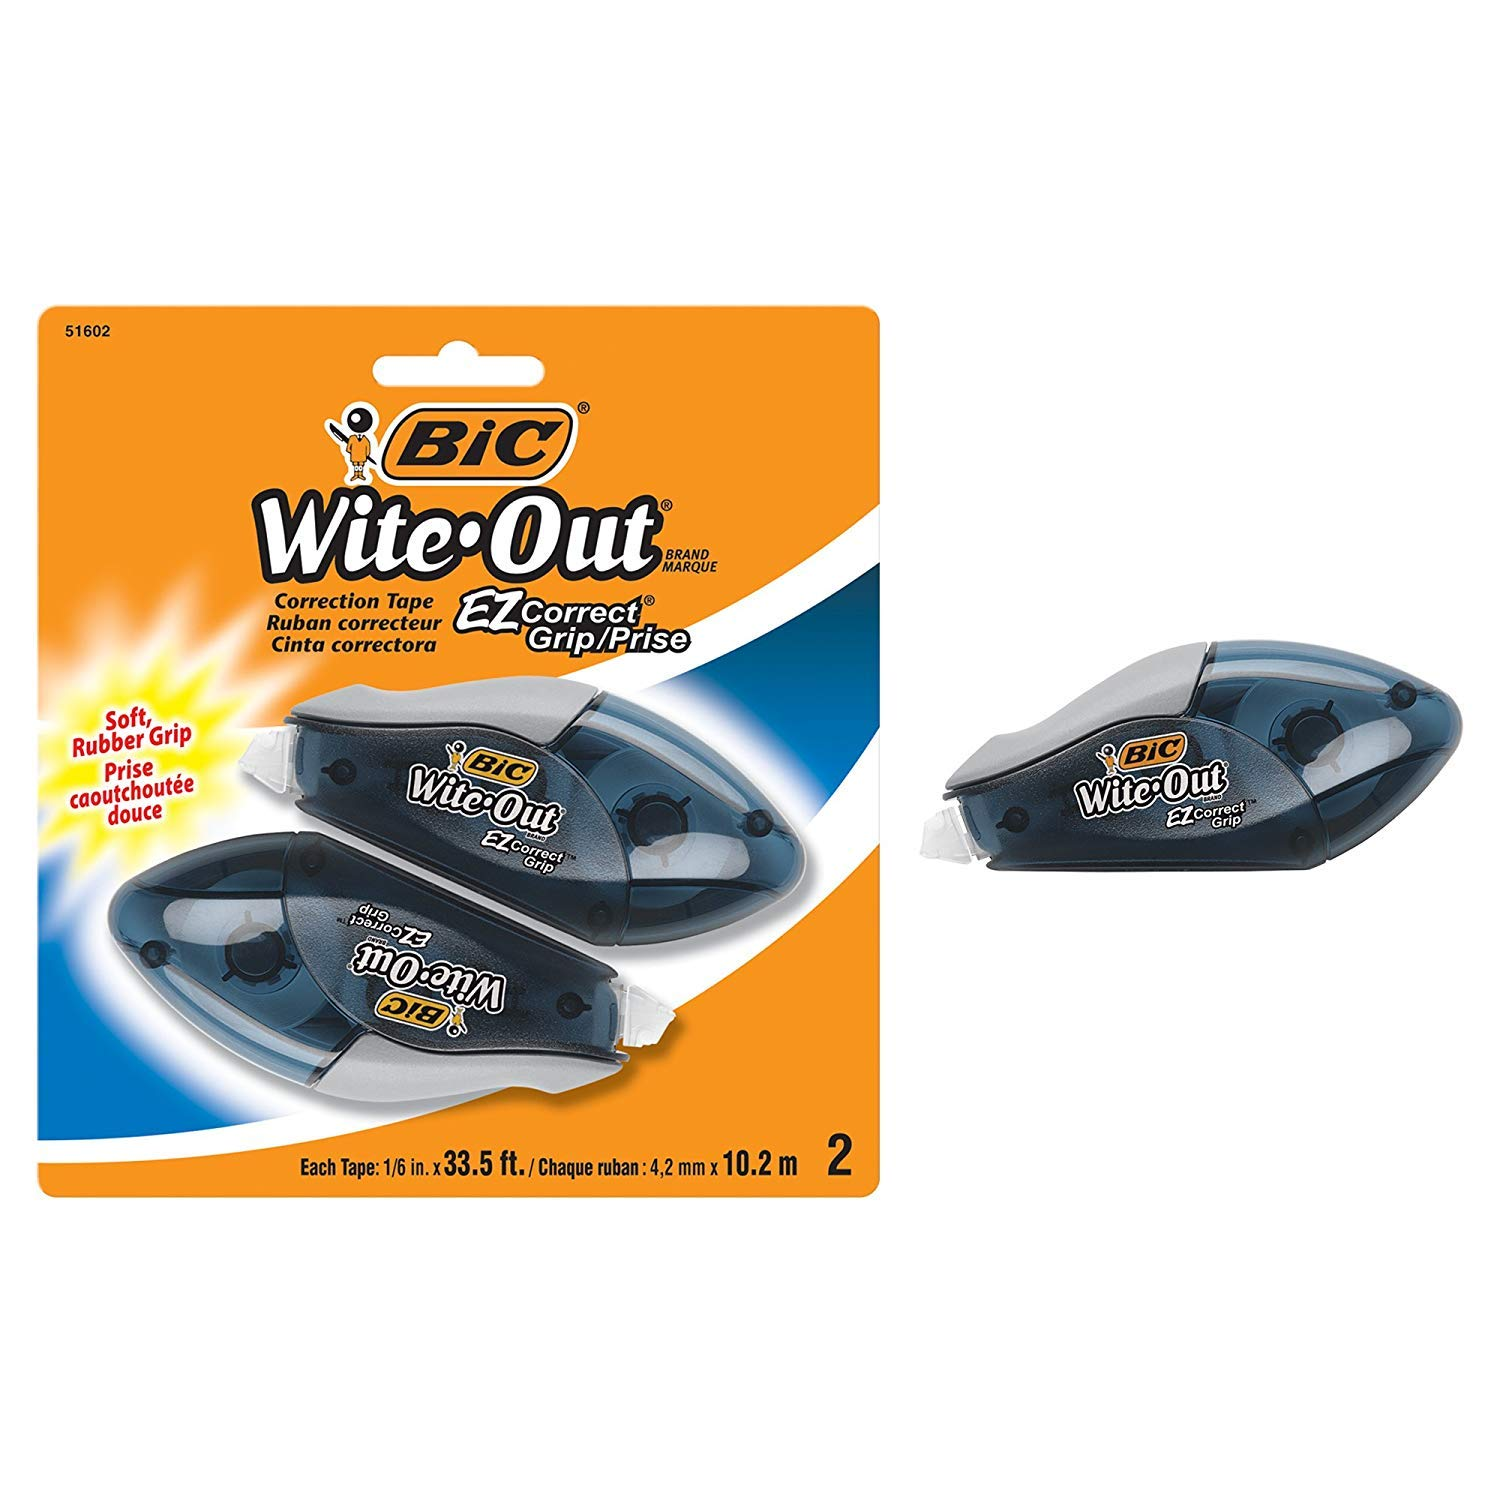 BIC Wite-Out Brand EZ Correct Grip Correction Tape, White, 2-Count [New Improved Version]